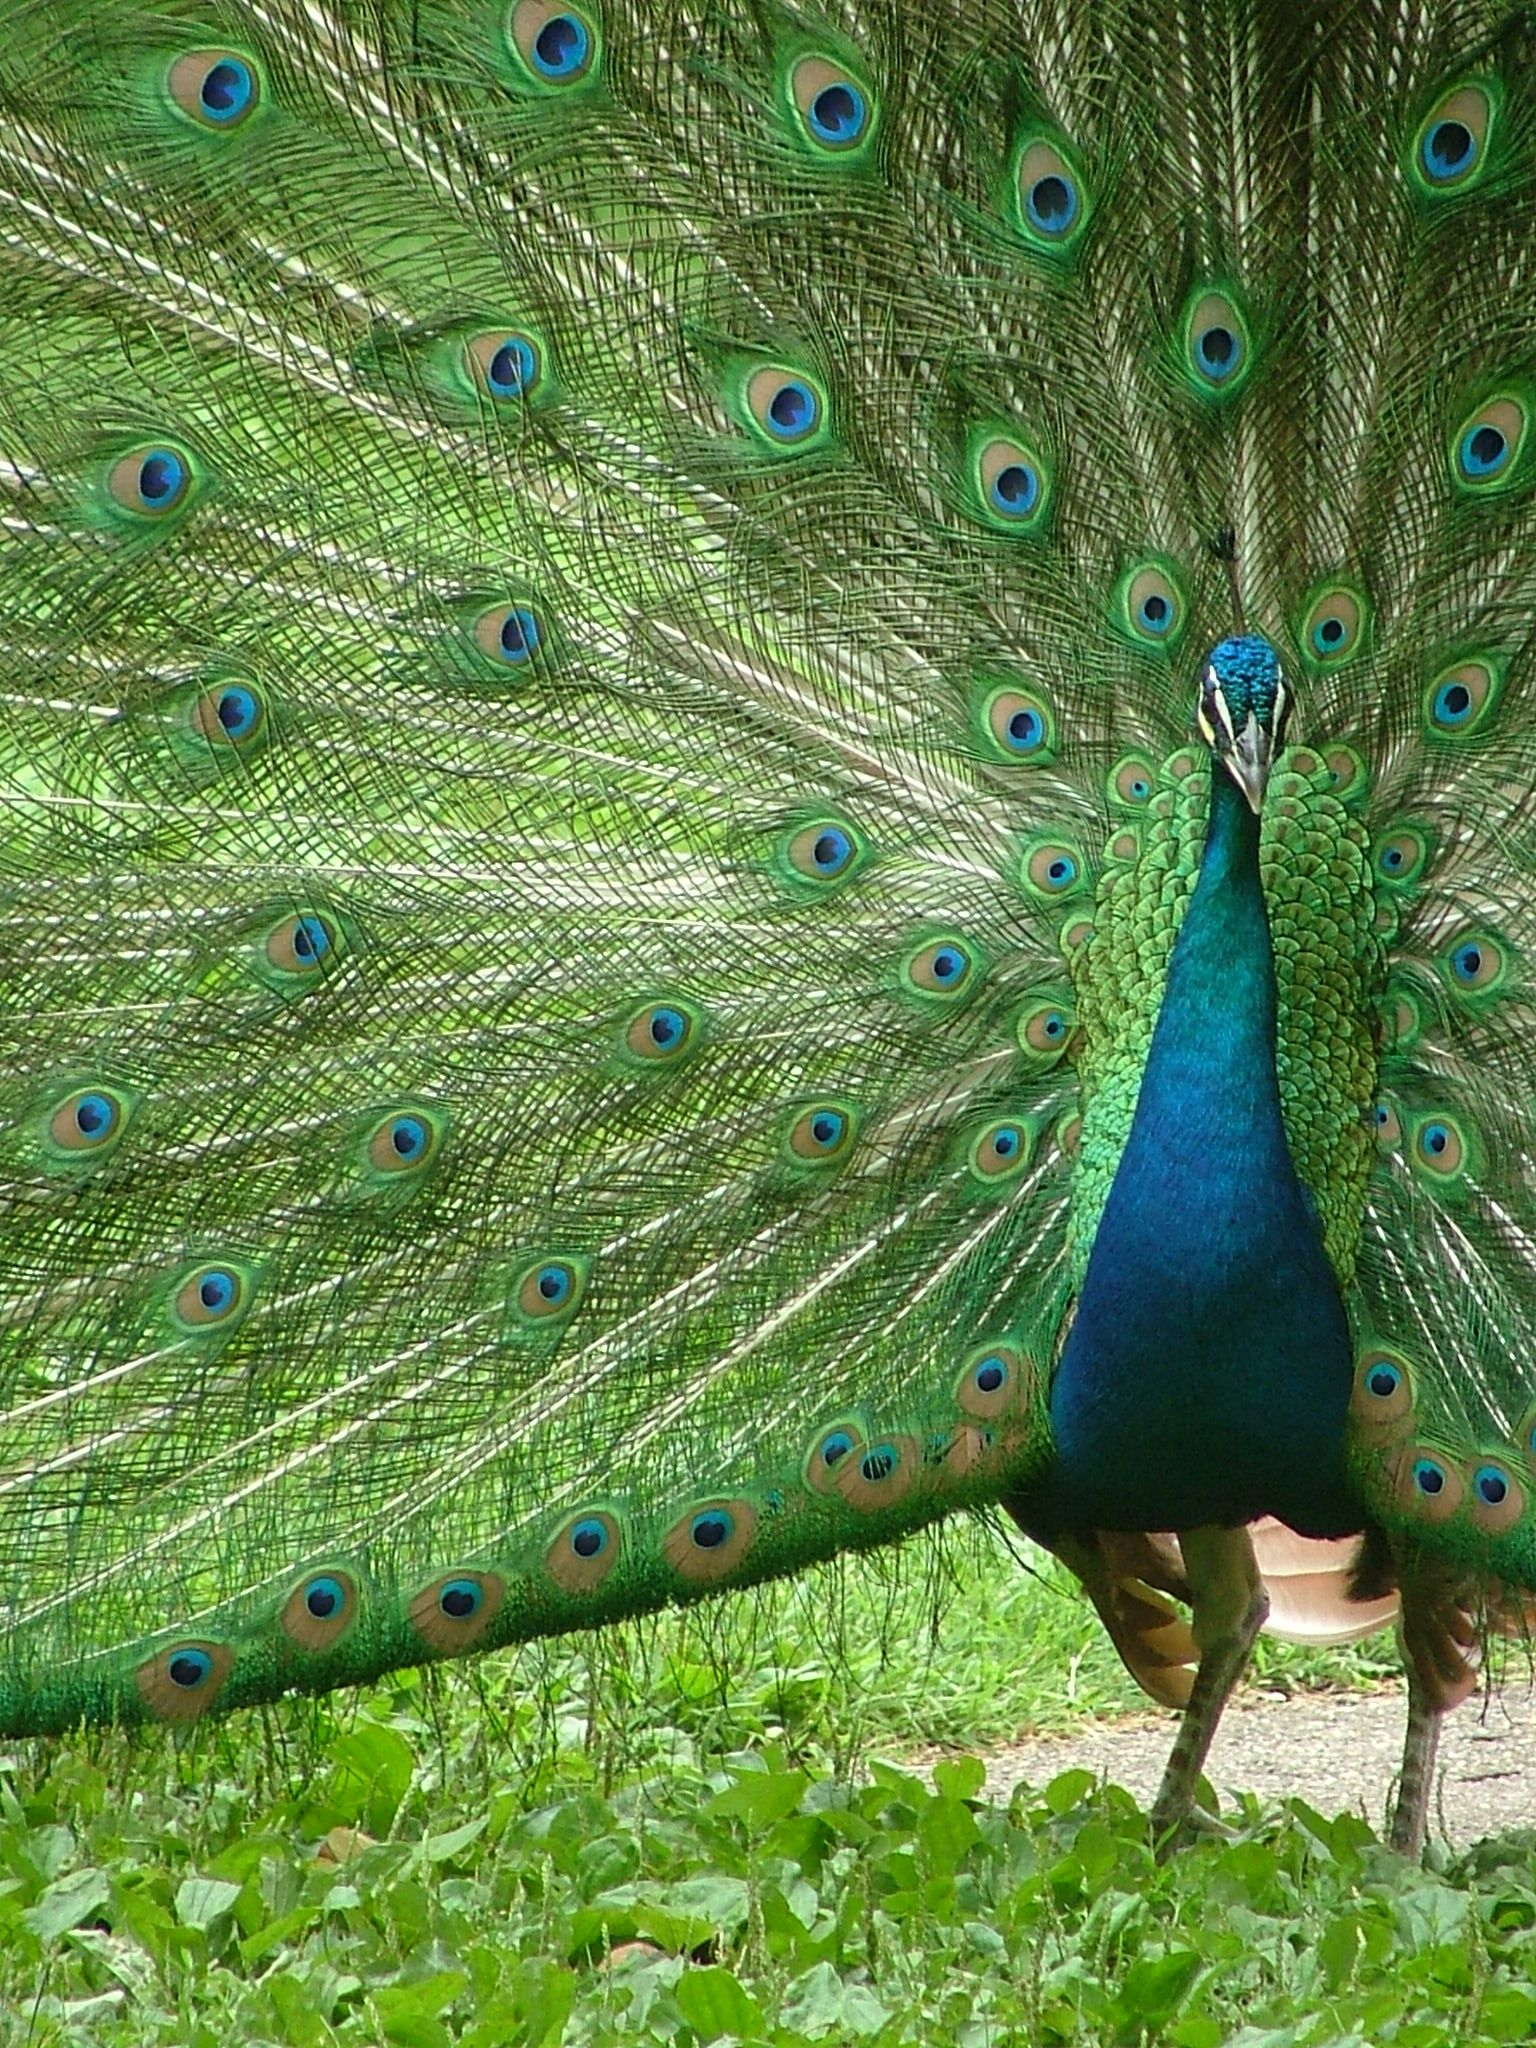 Bestandpeacock with outspread plumesg wikipedia peacocks bestandpeacock with outspread plumesg wikipedia mightylinksfo Image collections